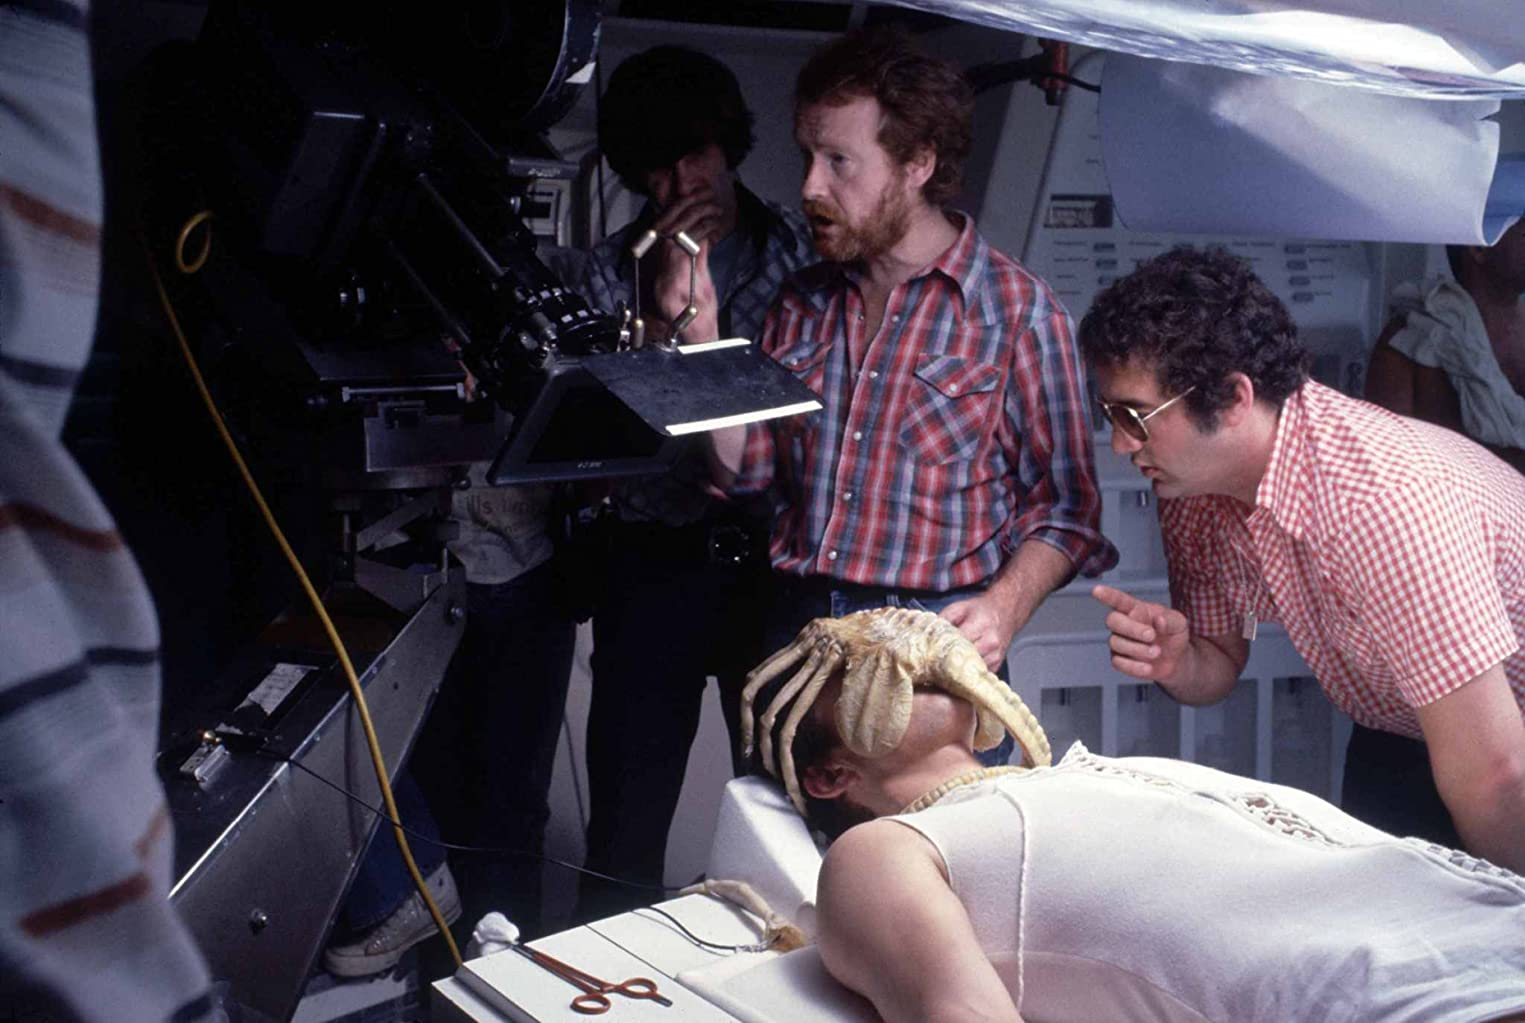 Ridley Scott Aims 'Pretty Hard R' Rating For Alien: Covenant 1